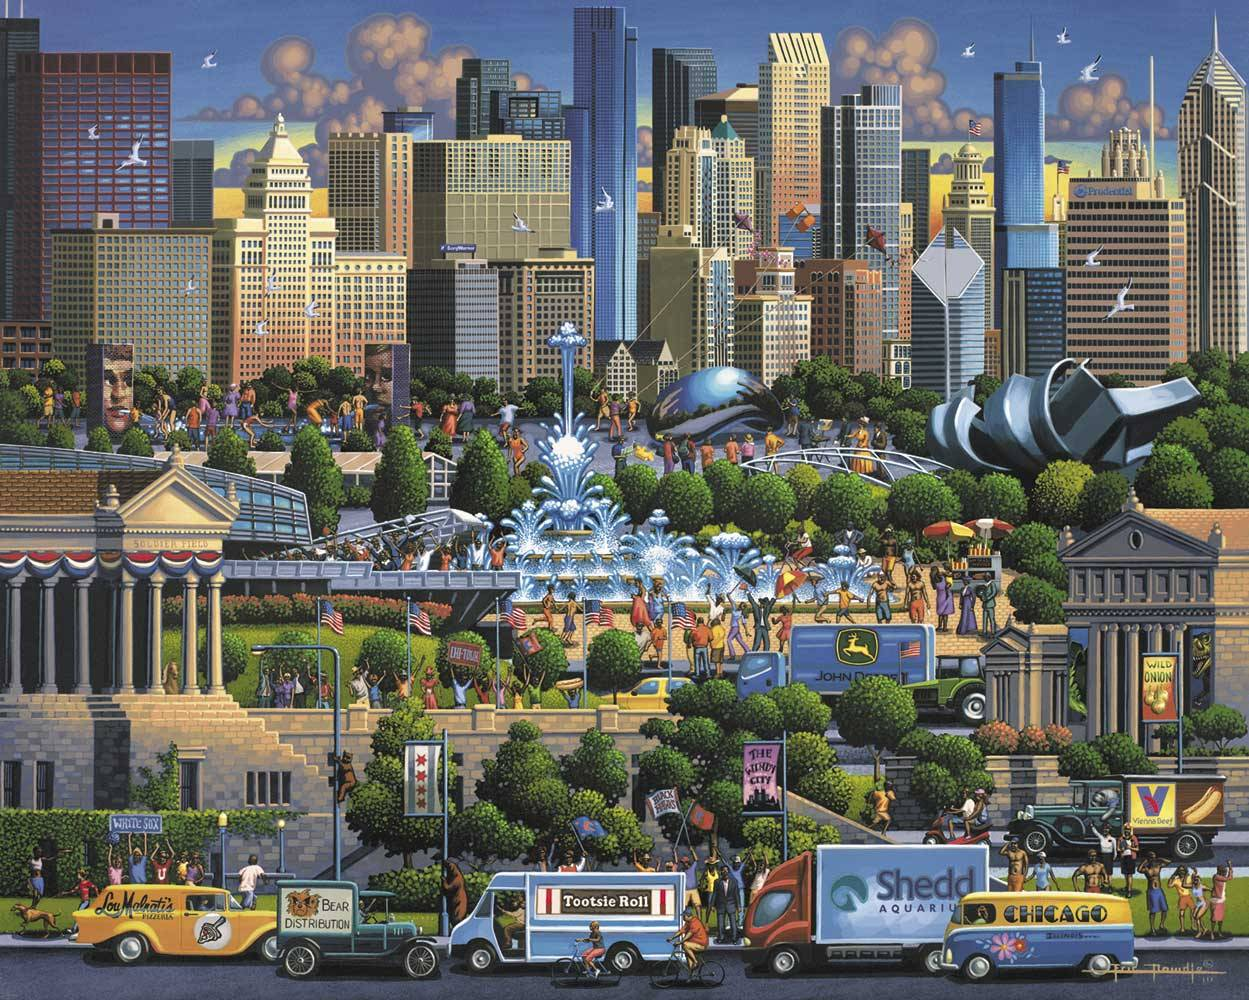 Dowdle Jigsaw Puzzle Chicago 1000 Piece by Dowdle Folk Art